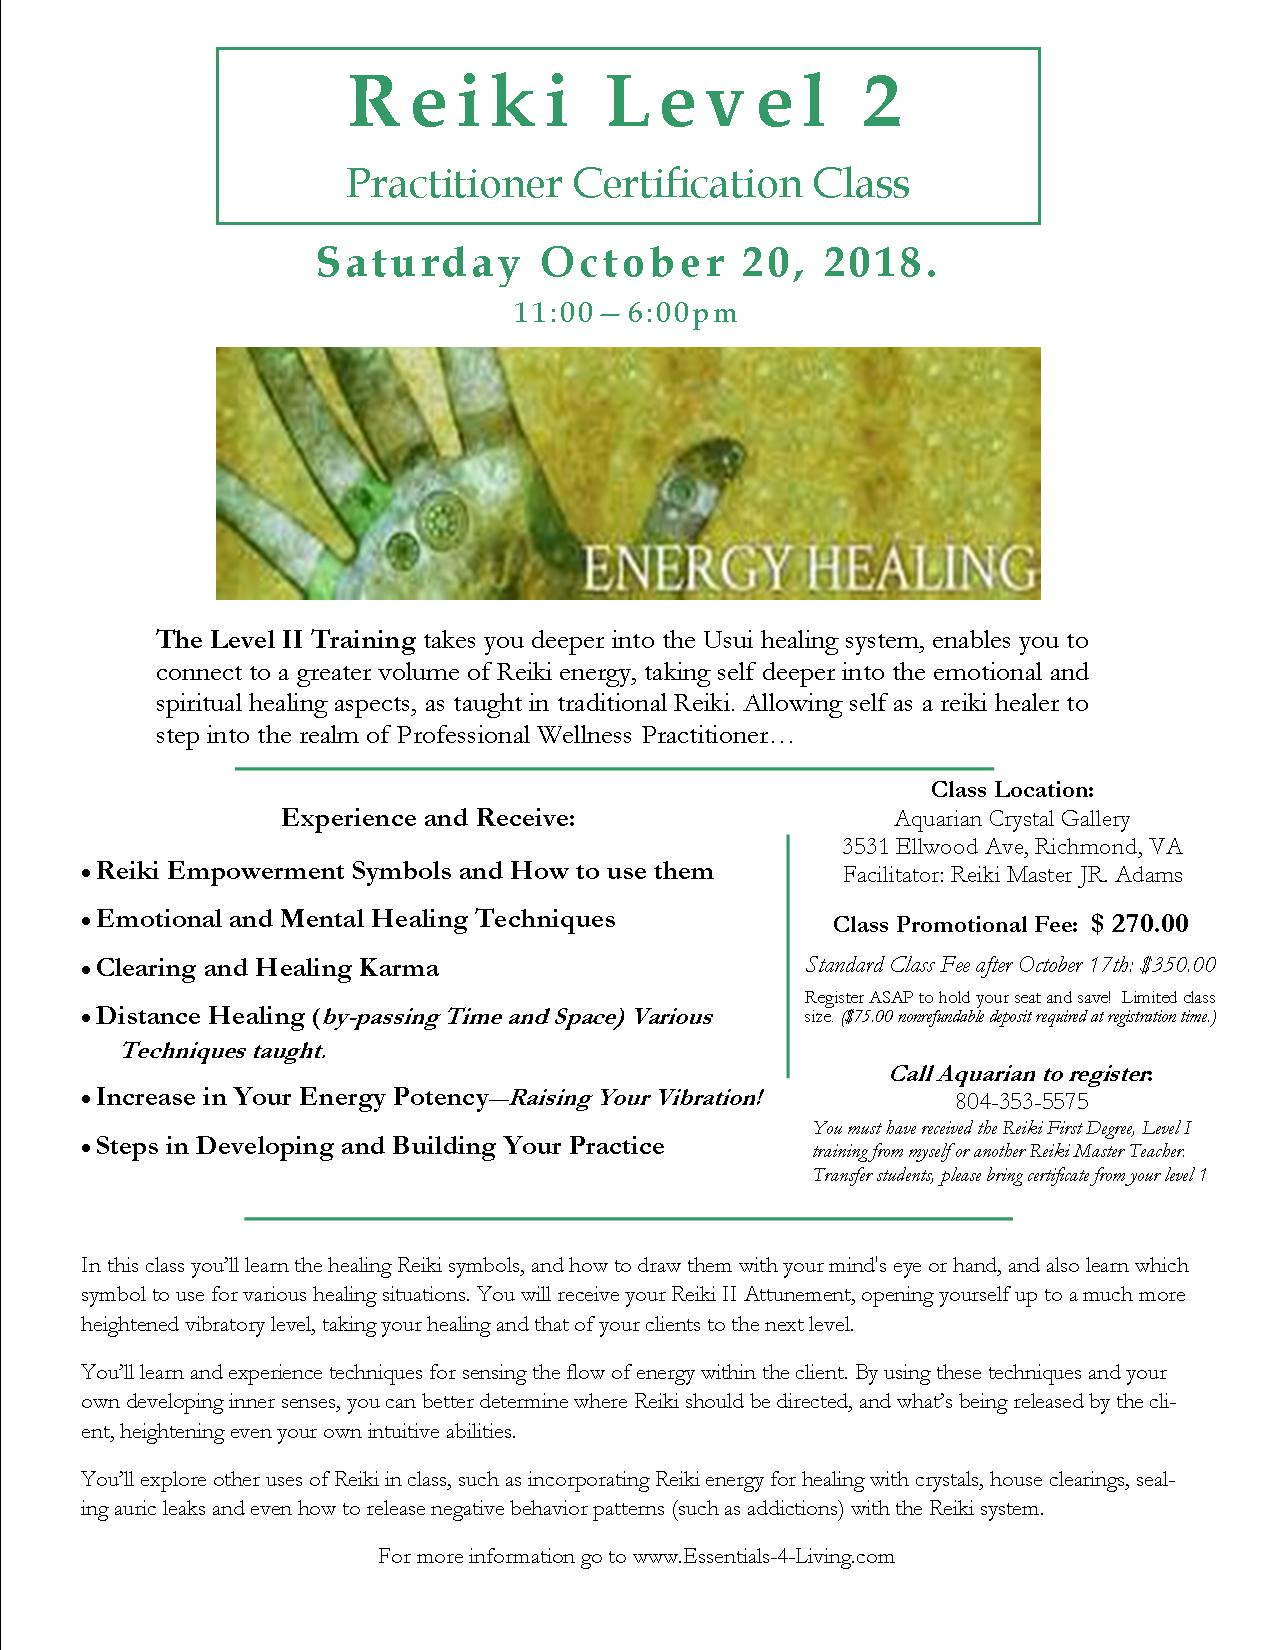 Reiki Level II Class Flier October 2018